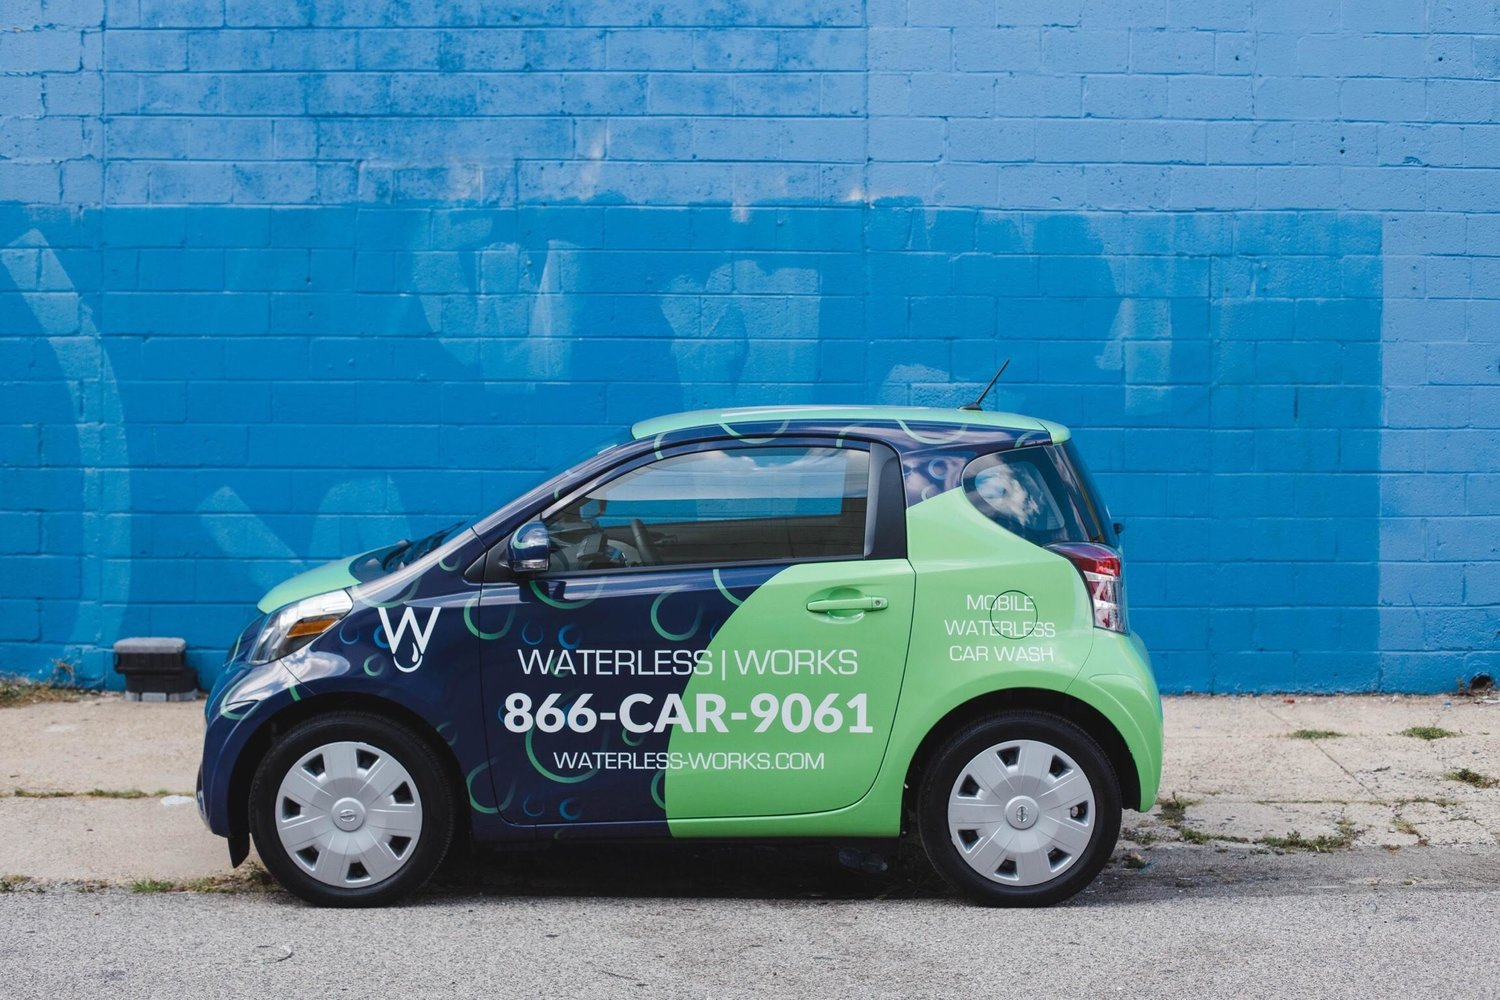 A Waterless Car Wash in Delco? The Parent Company of Kelley Blue Book Loves the Idea